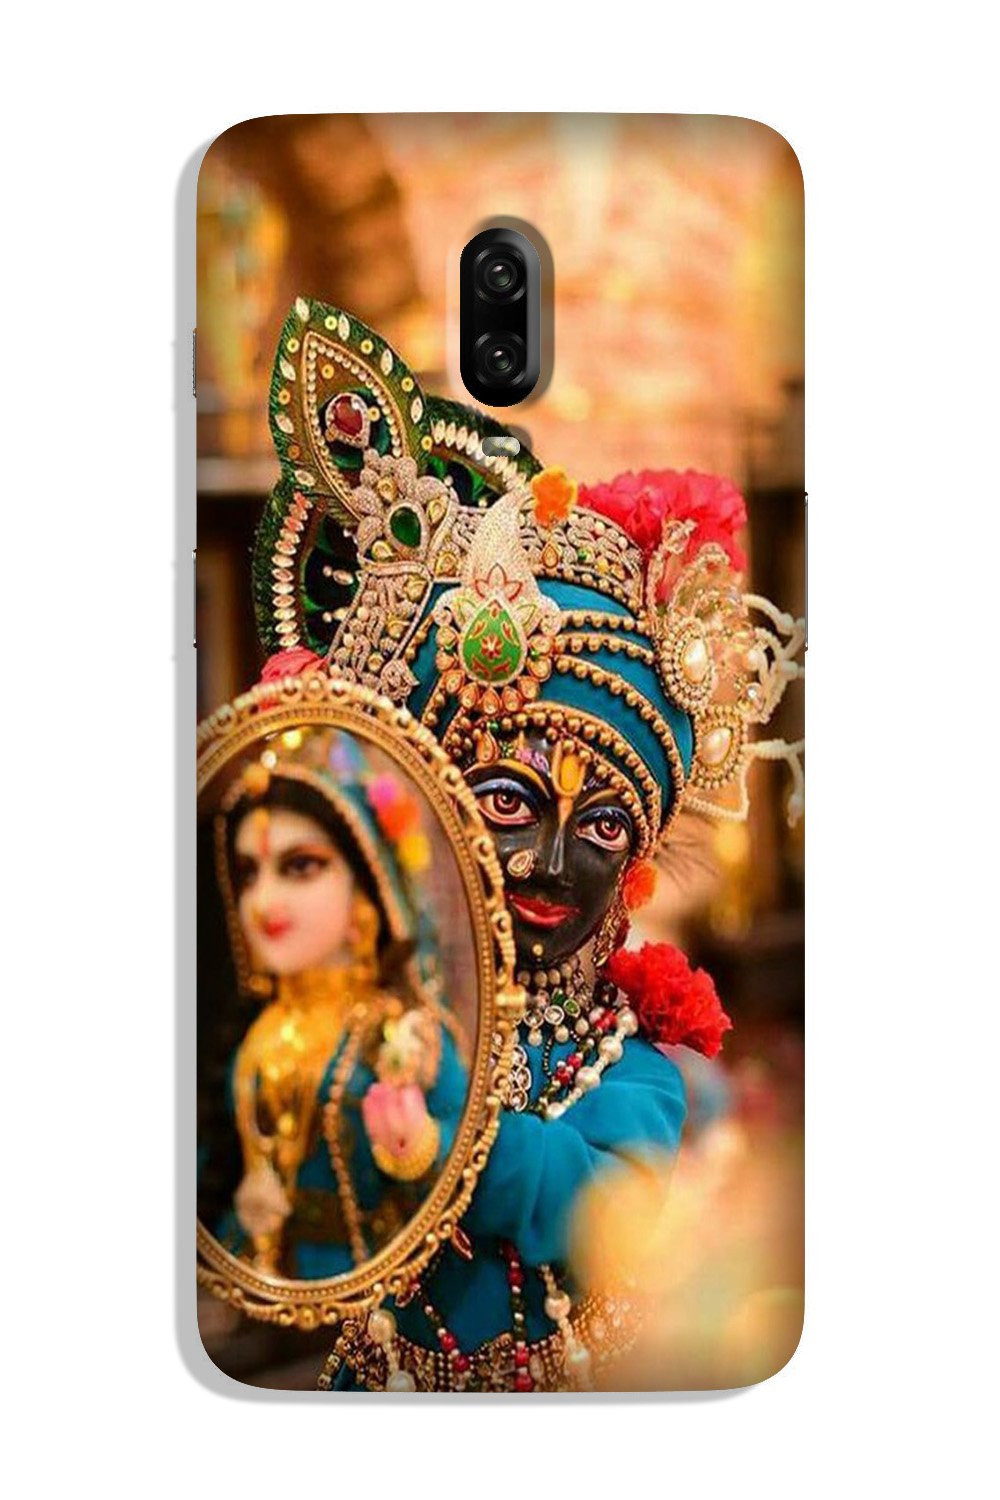 Lord Krishna5 Case for OnePlus 6T